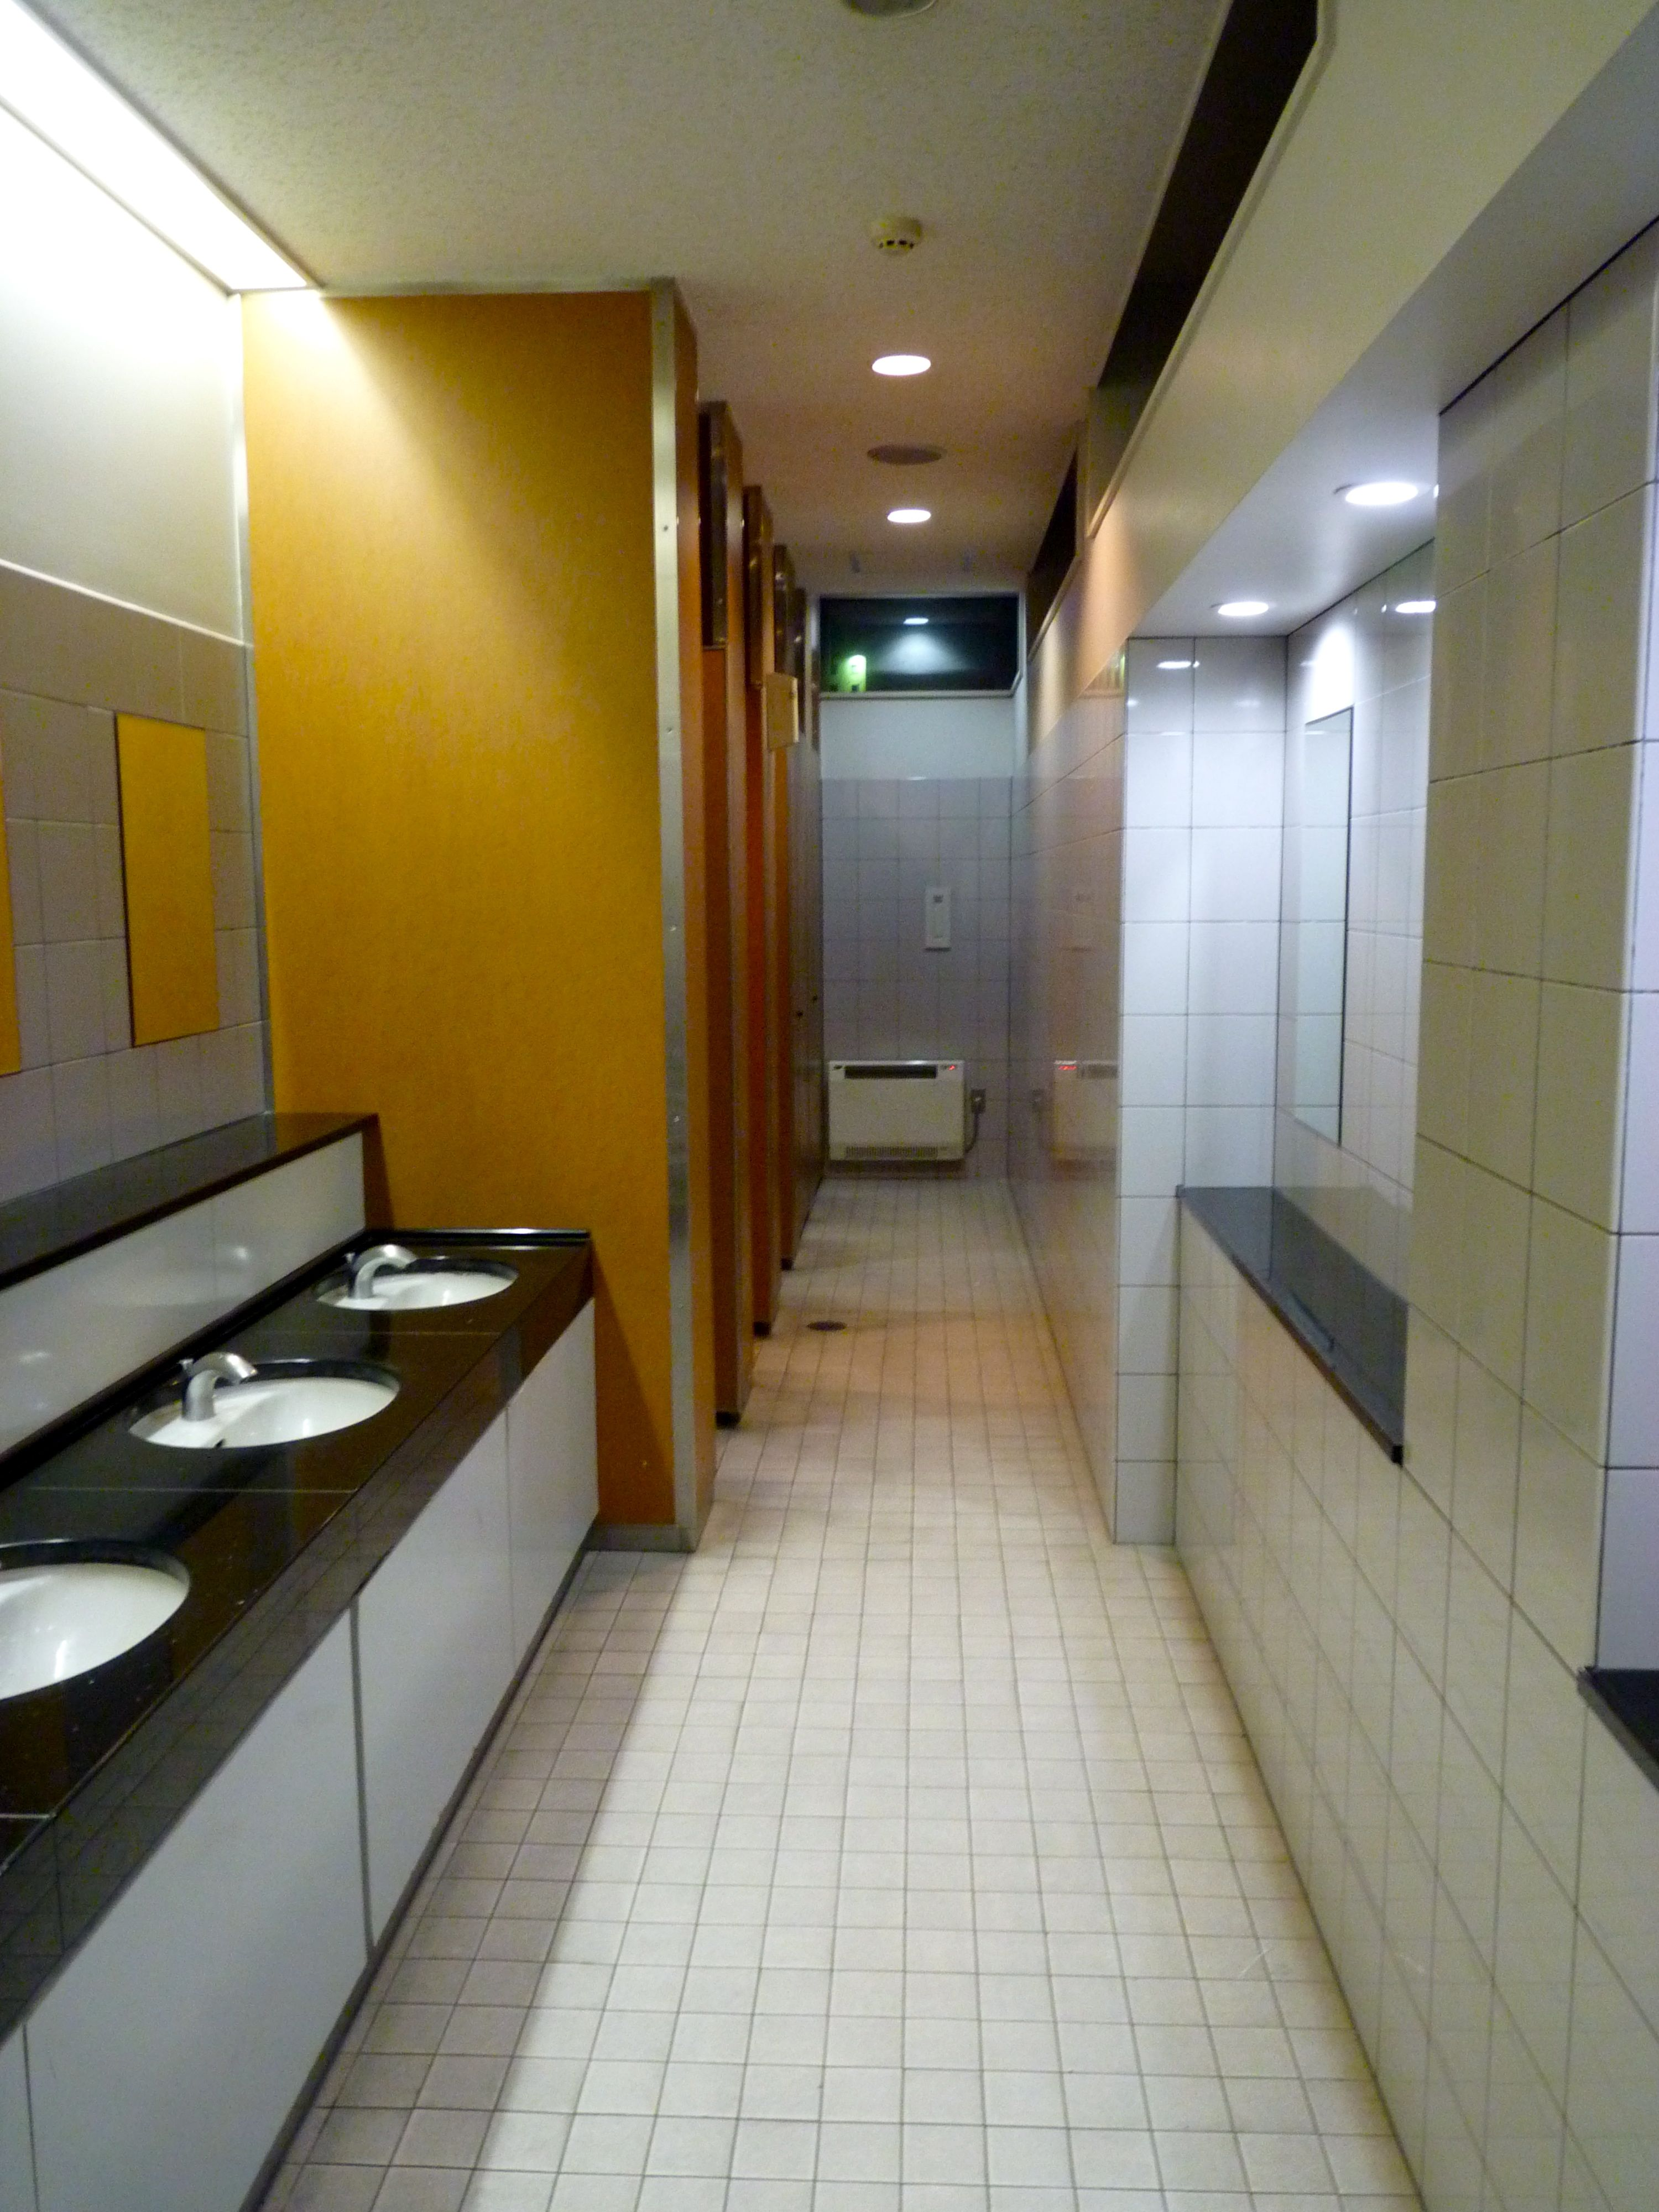 The Exceptional Qualities of Ladies' Rooms in Japan